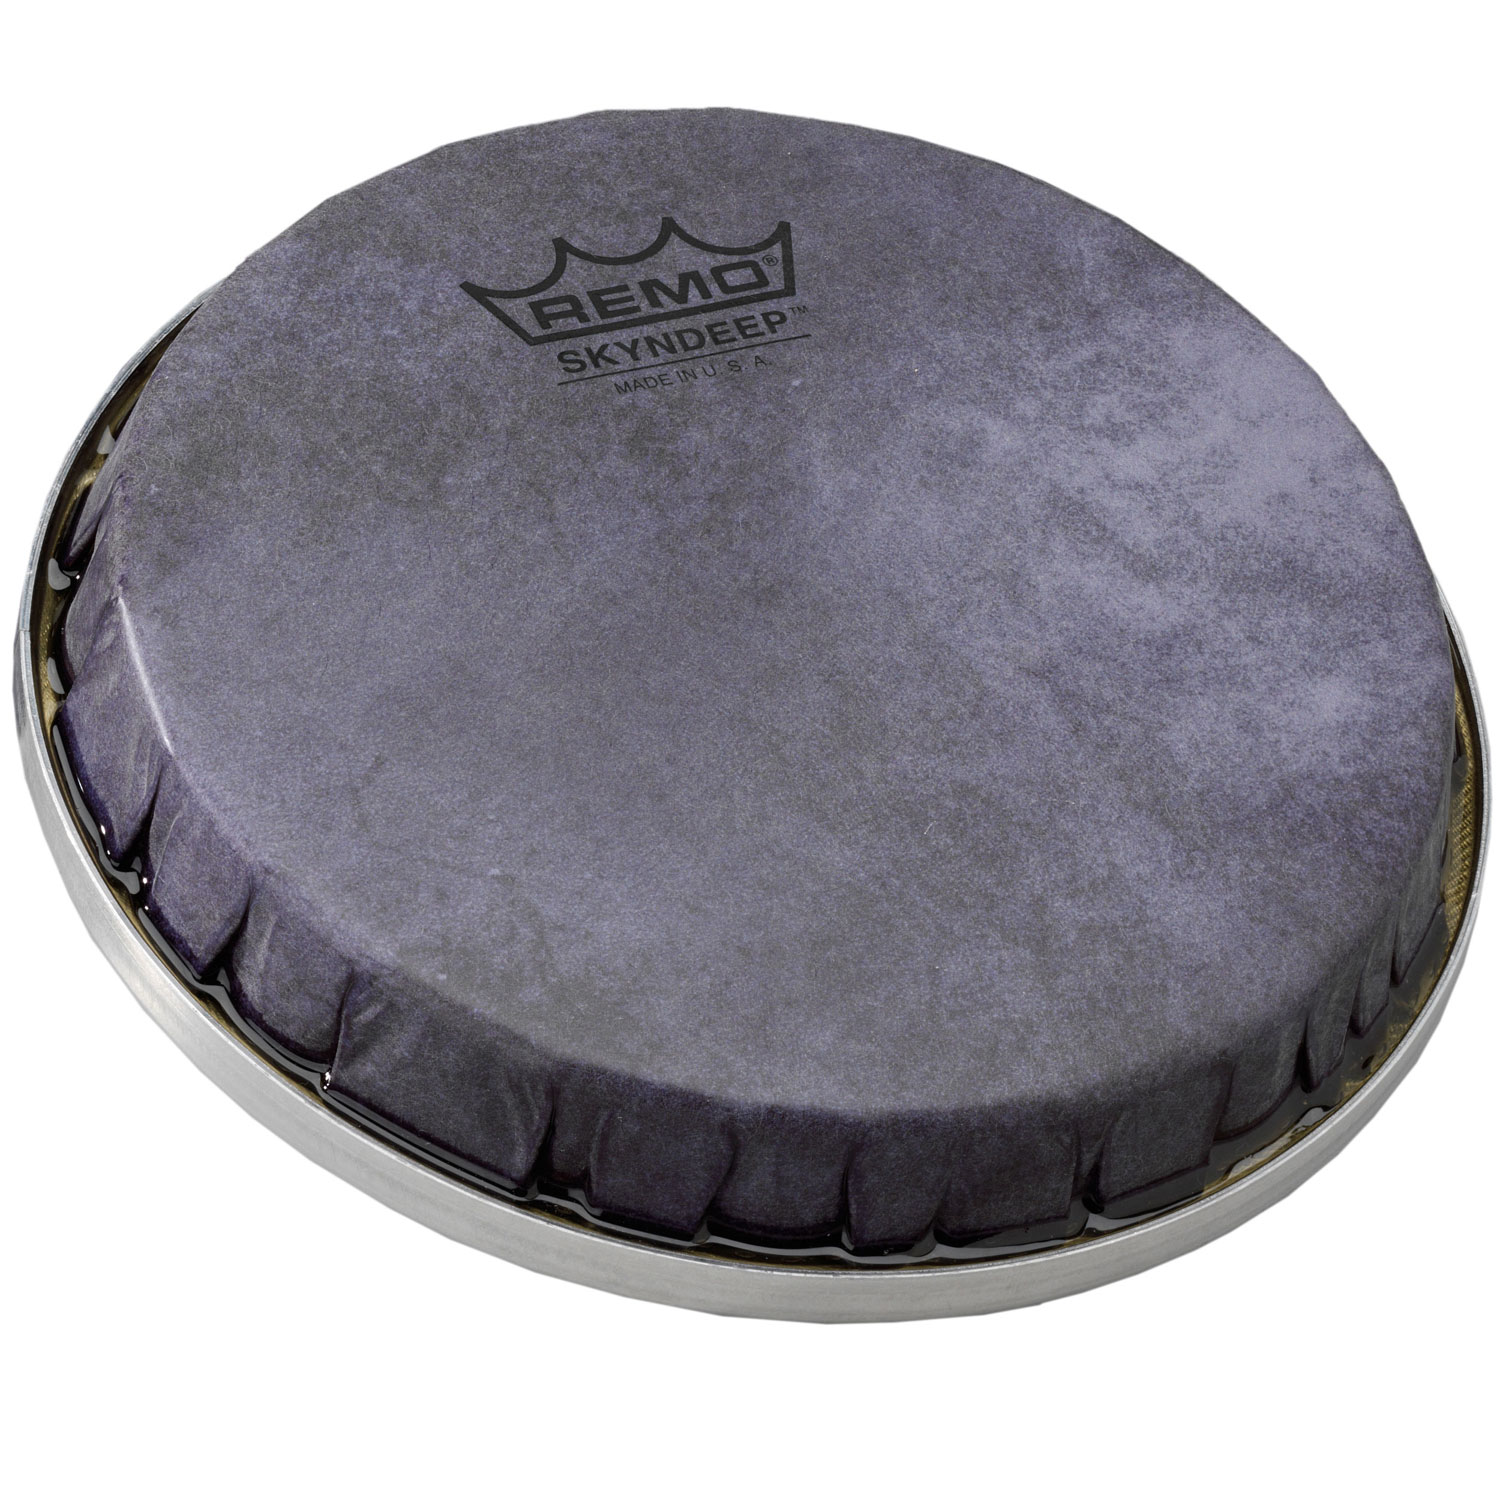 """Remo 6.75"""" S-Series Skyndeep Bongo Drum Head with Black Calfskin Graphic"""